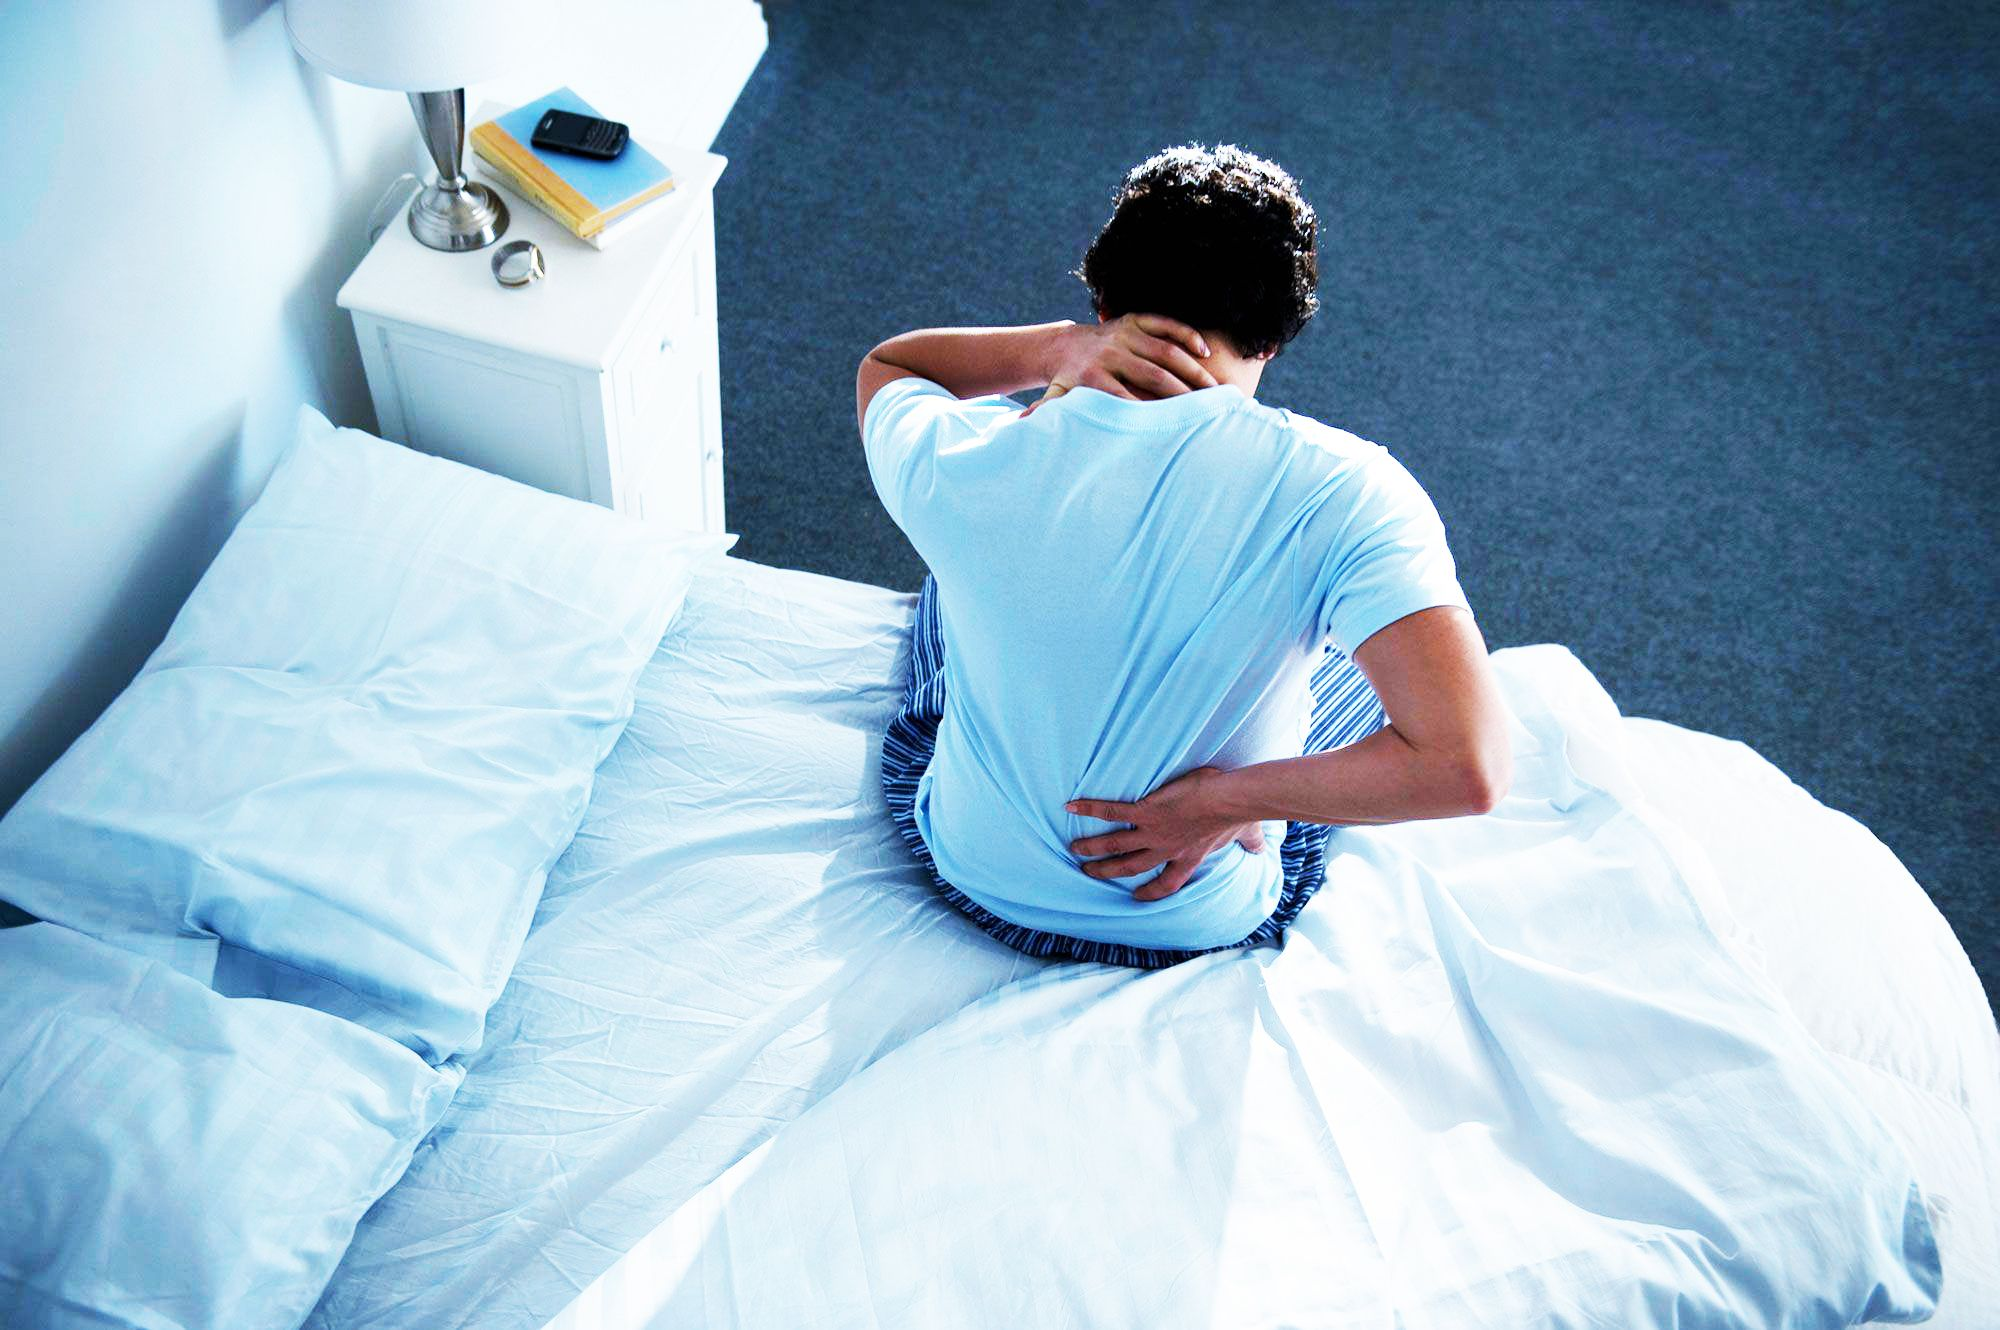 What Kind Of Mattress Is Good For Back Pain 7 Mattresses To Help You Deal With Back Pain And Sleep Better